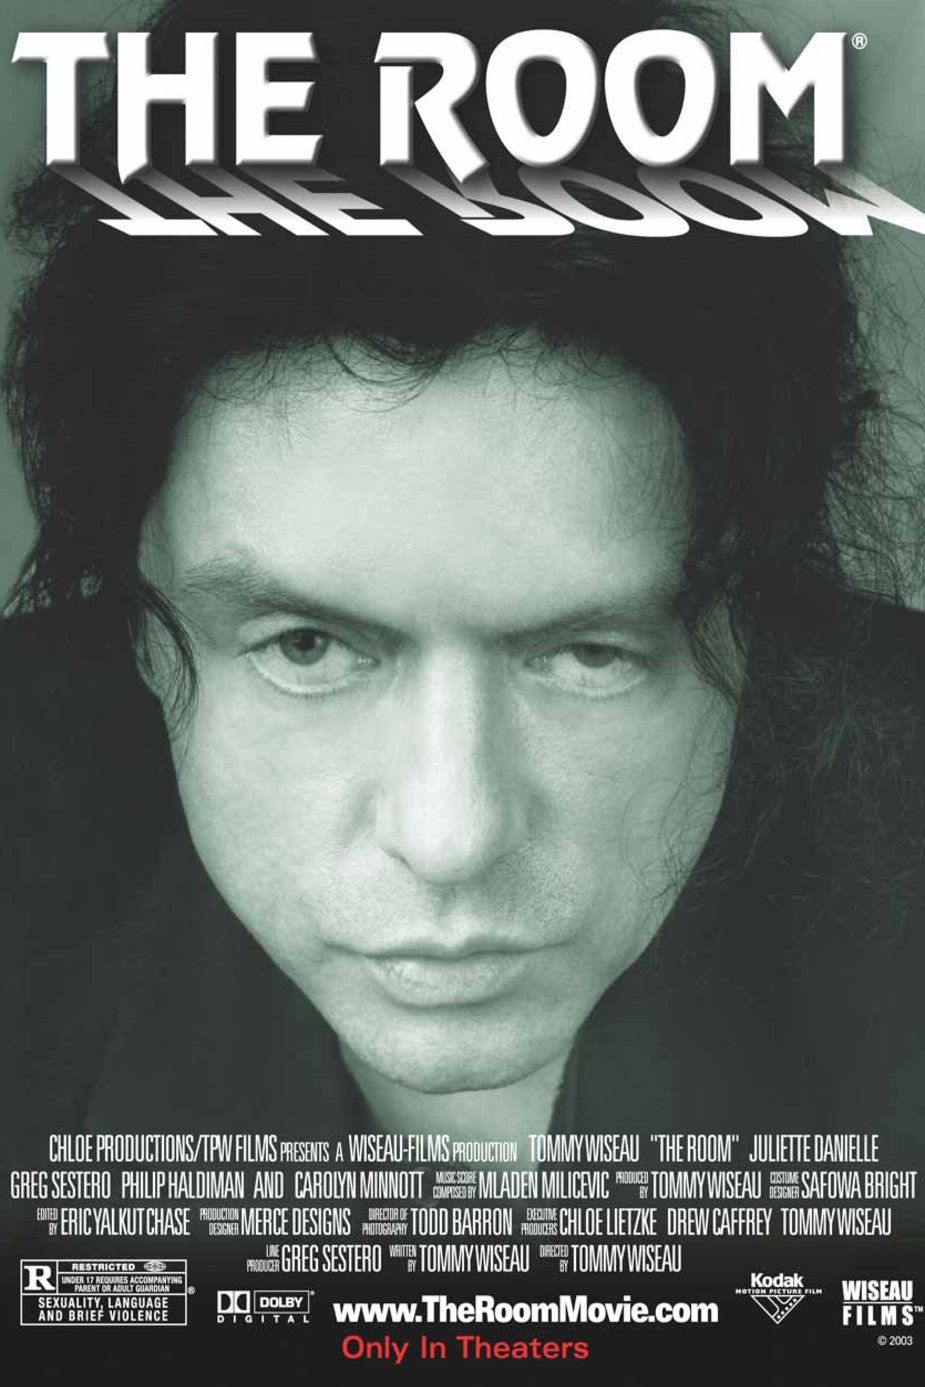 瘟室 (THE ROOM) The room film, The room tommy, The room 2003